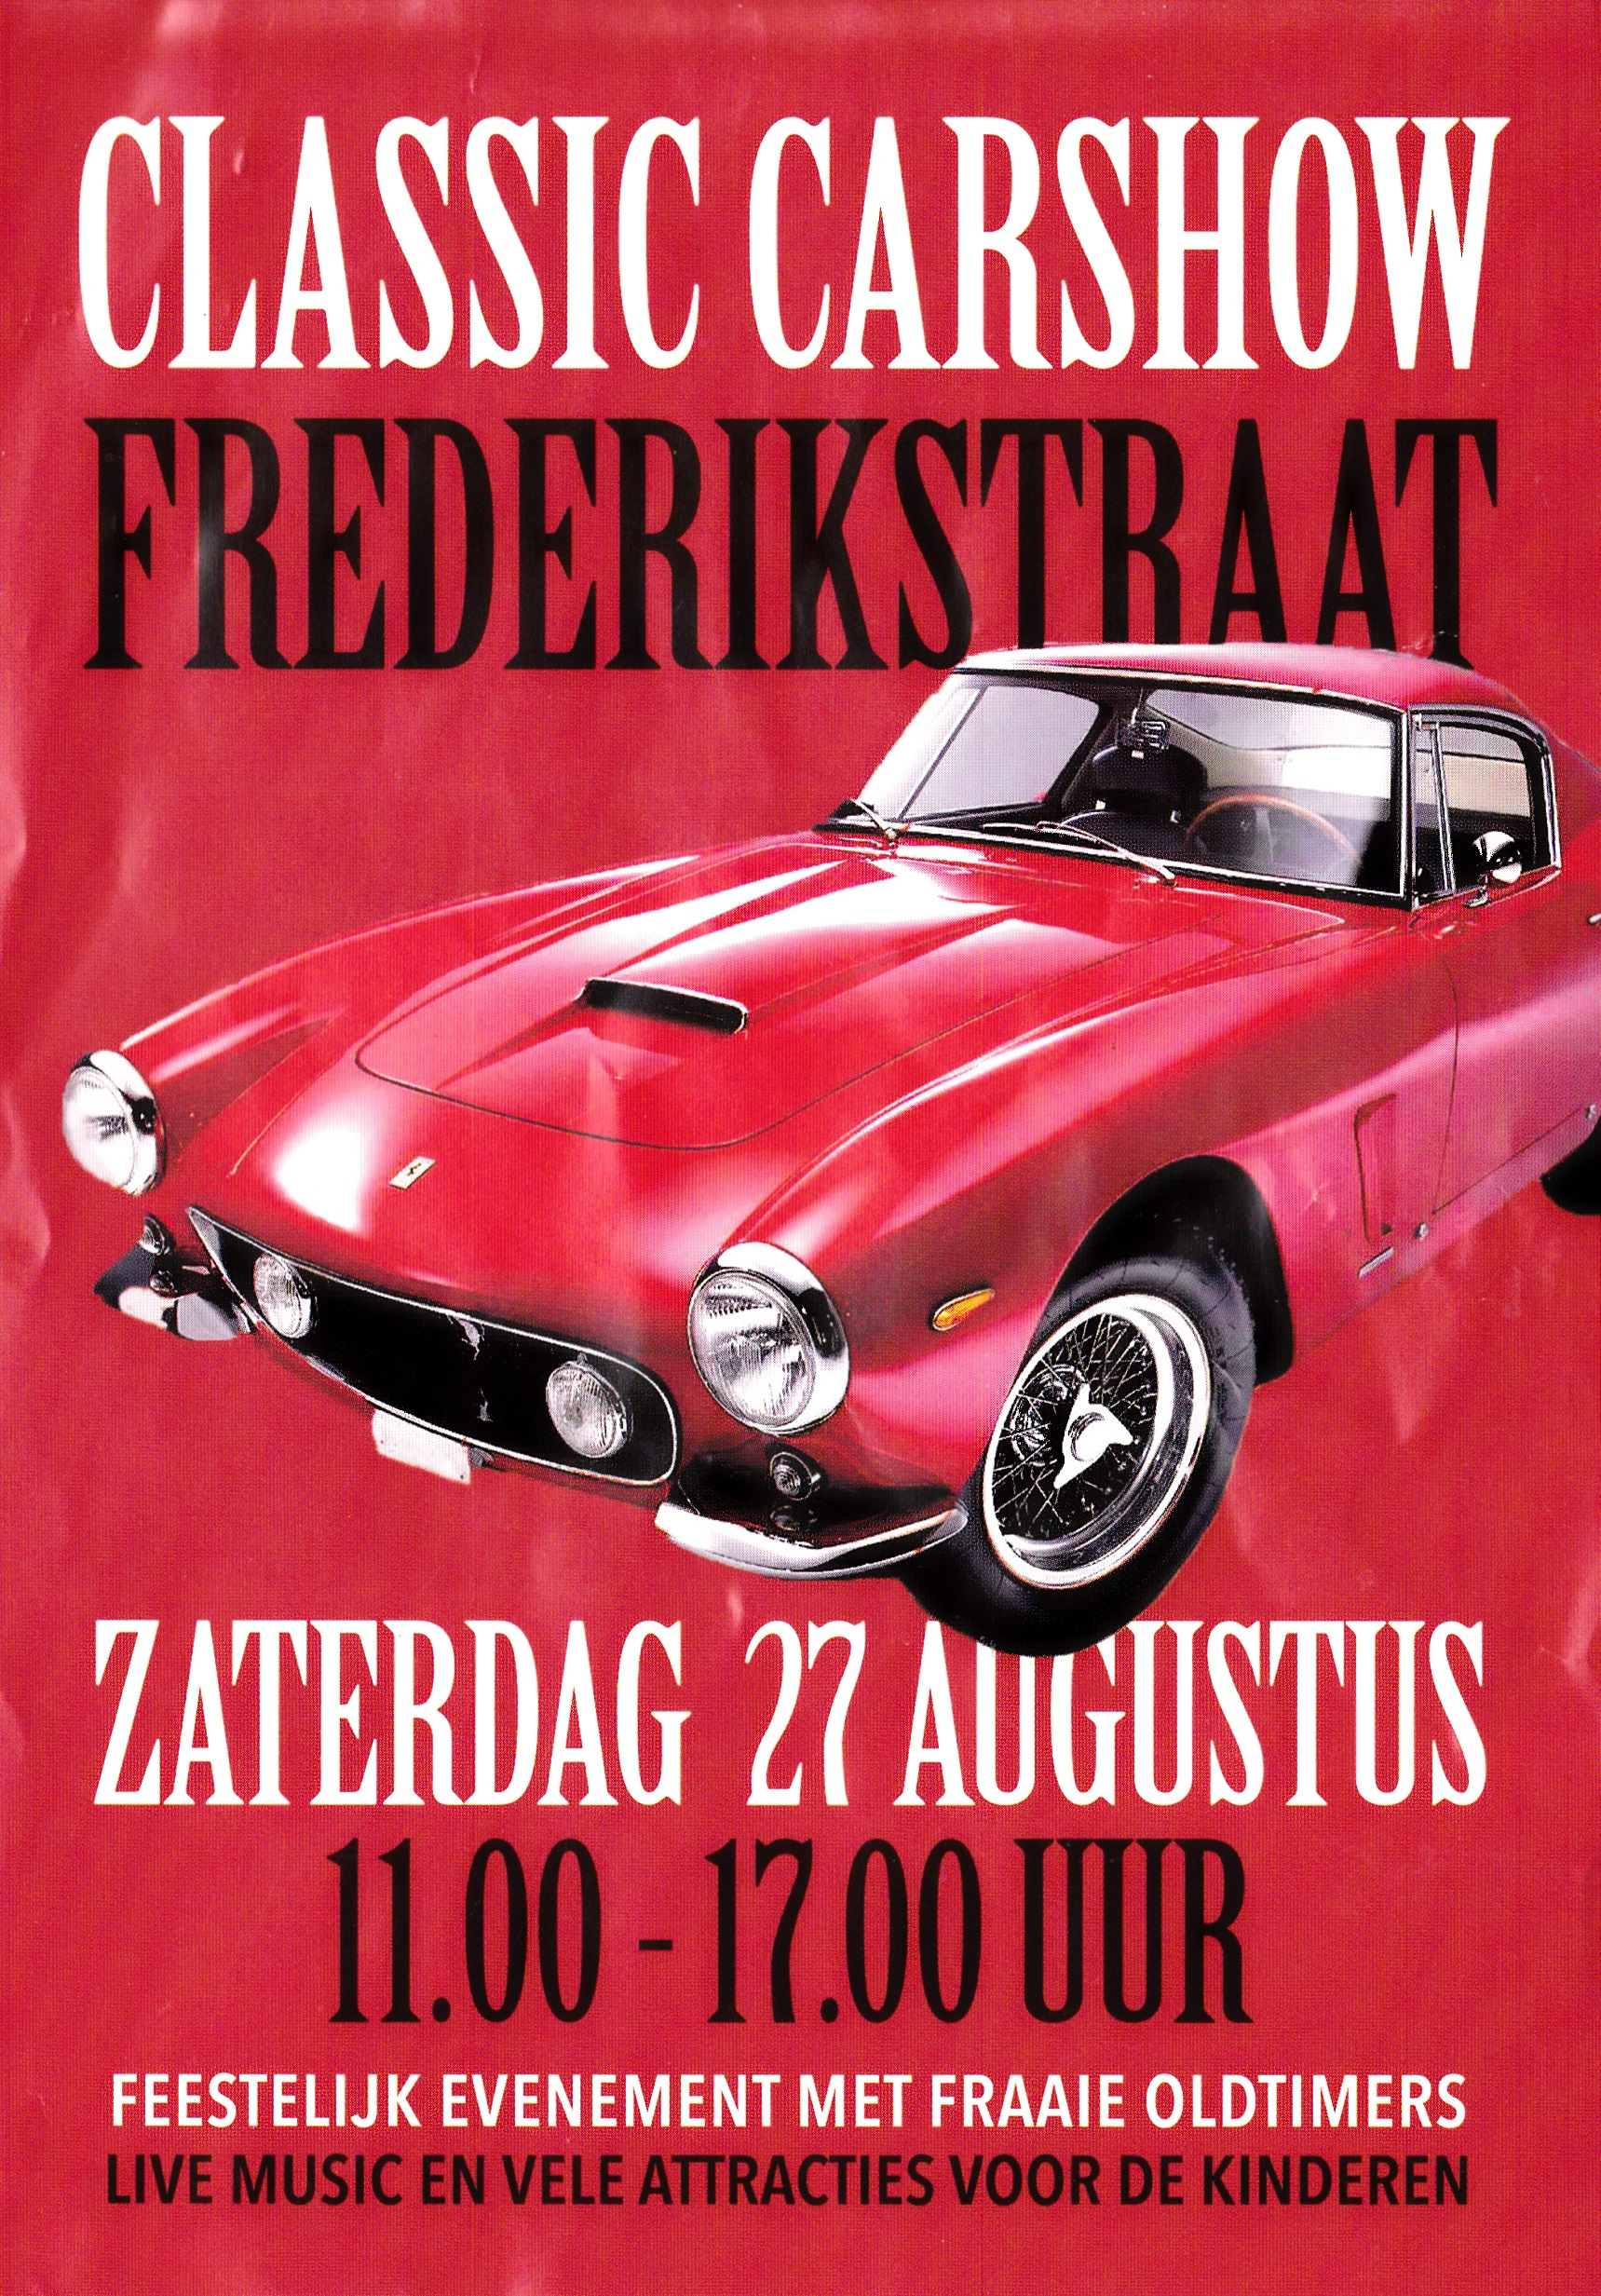 Flyer Frederikstraat